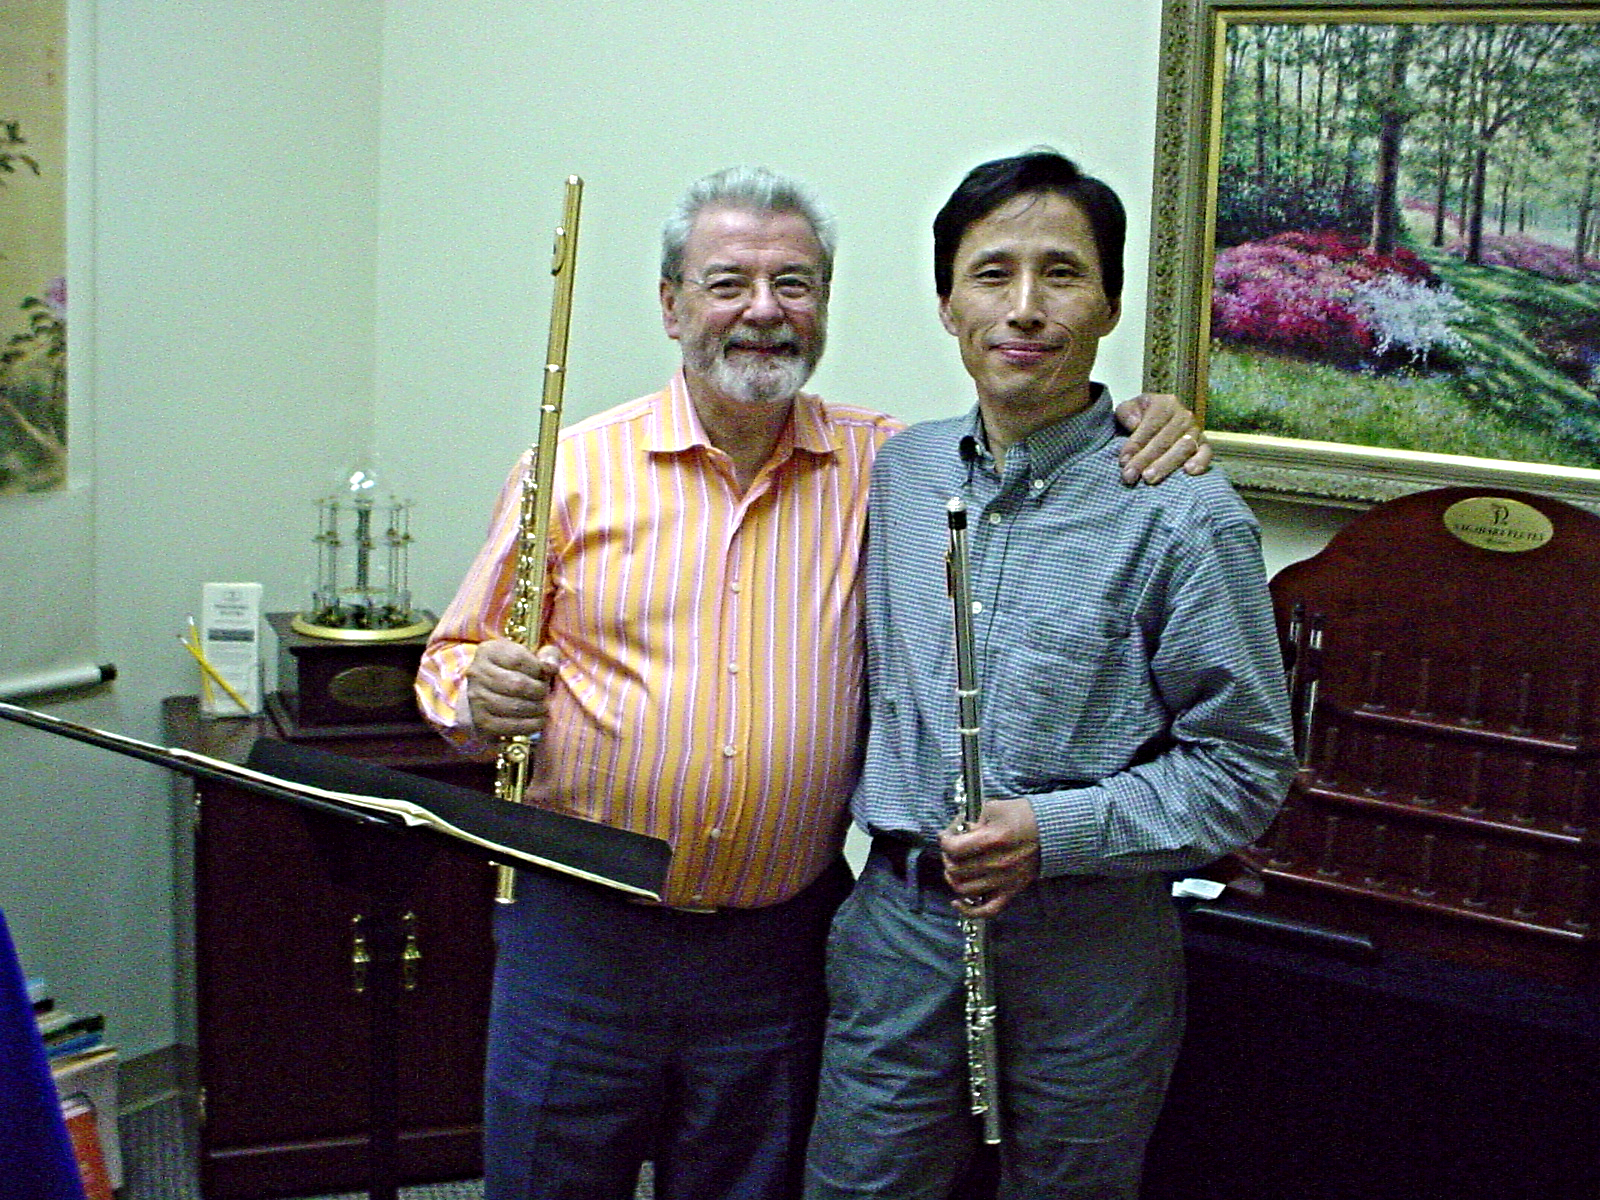 Sir James Galway & Kanichi Nagahara